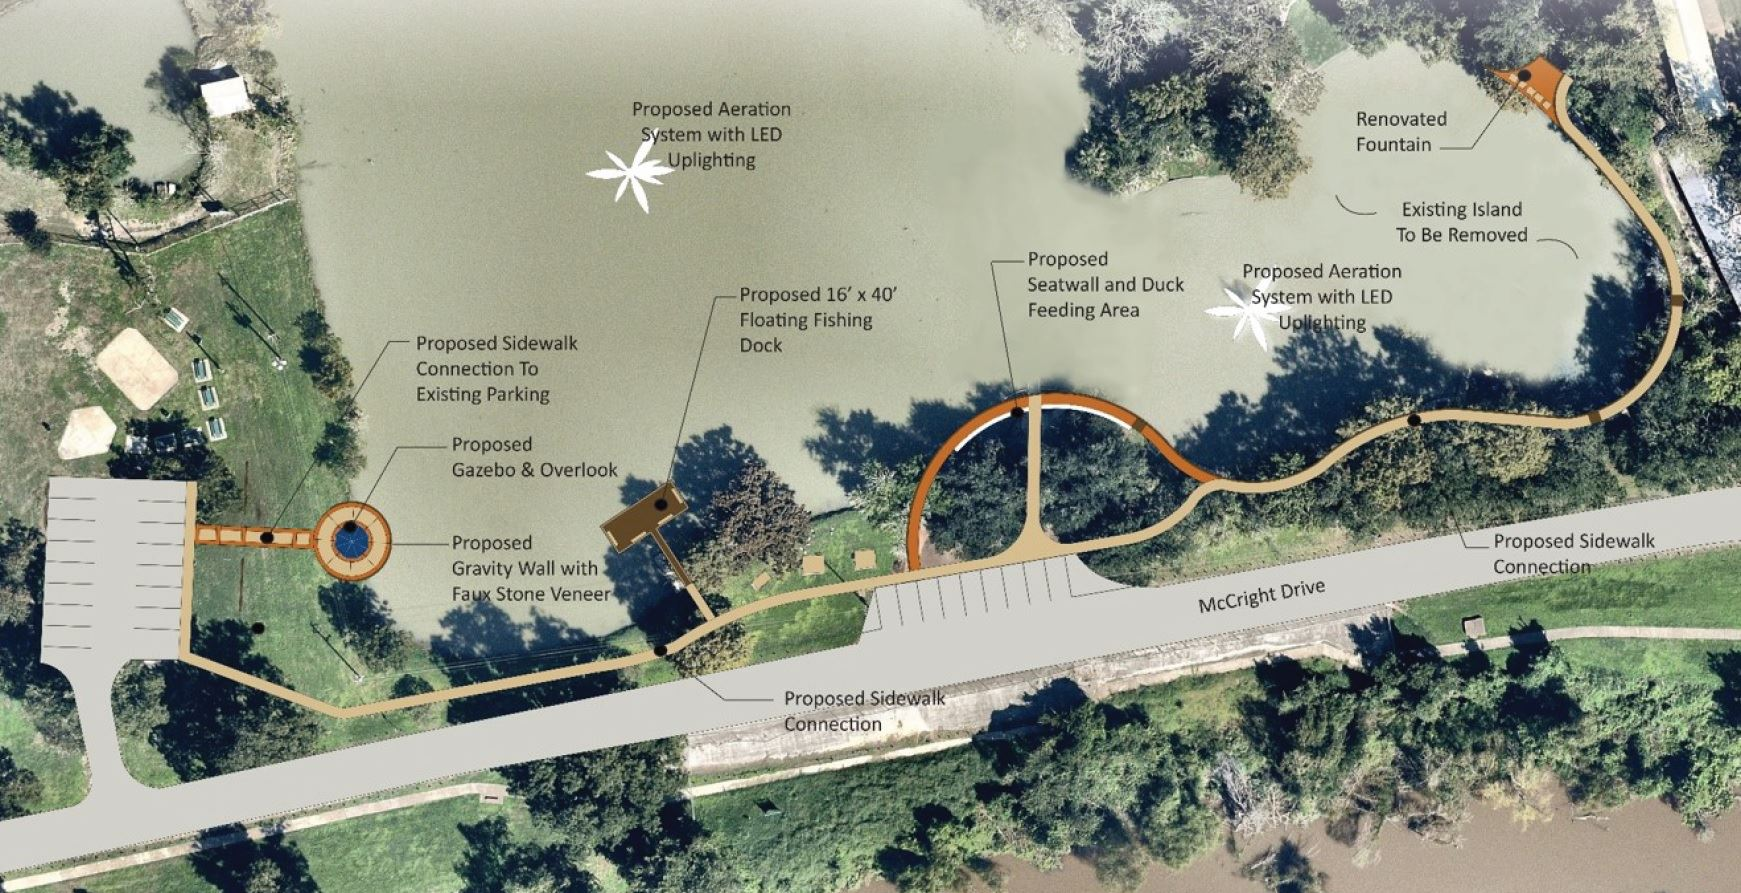 The proposed duck pond design, featuring a larger water area and gazebo moved to opposite side